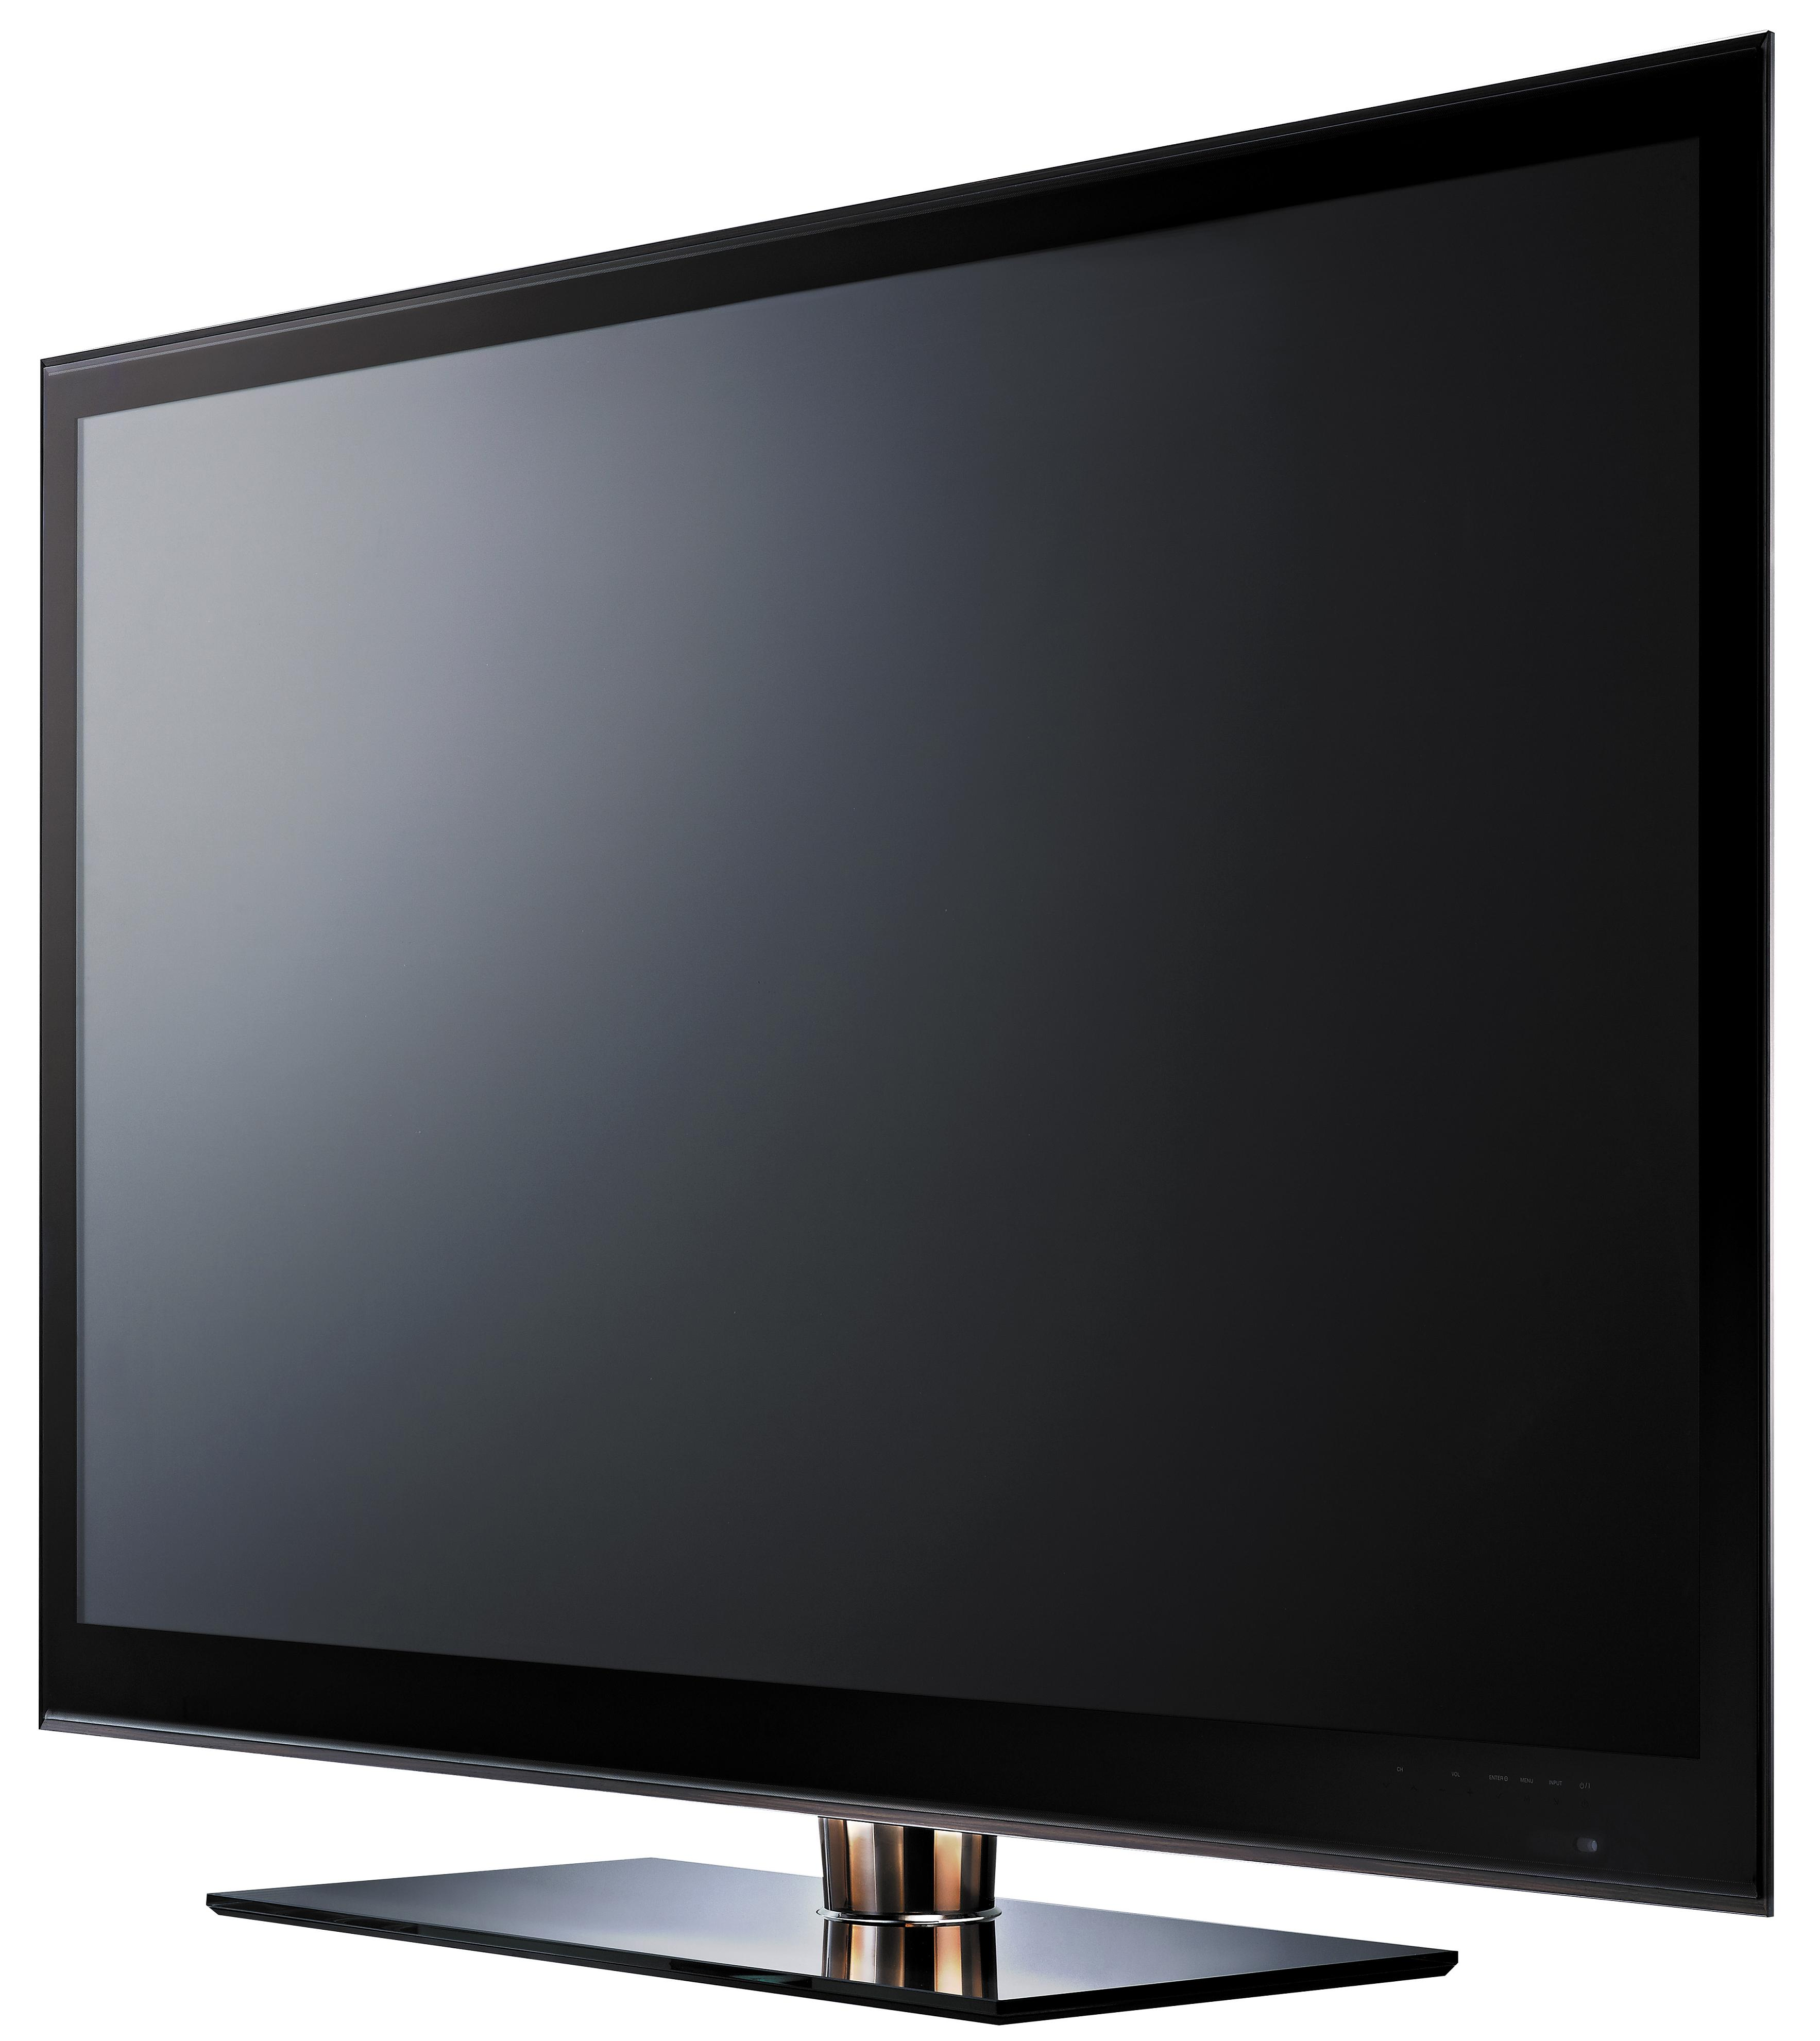 LG OFFERING INFINITE POSSIBILITIES AT IFA 2010 WITH LATEST